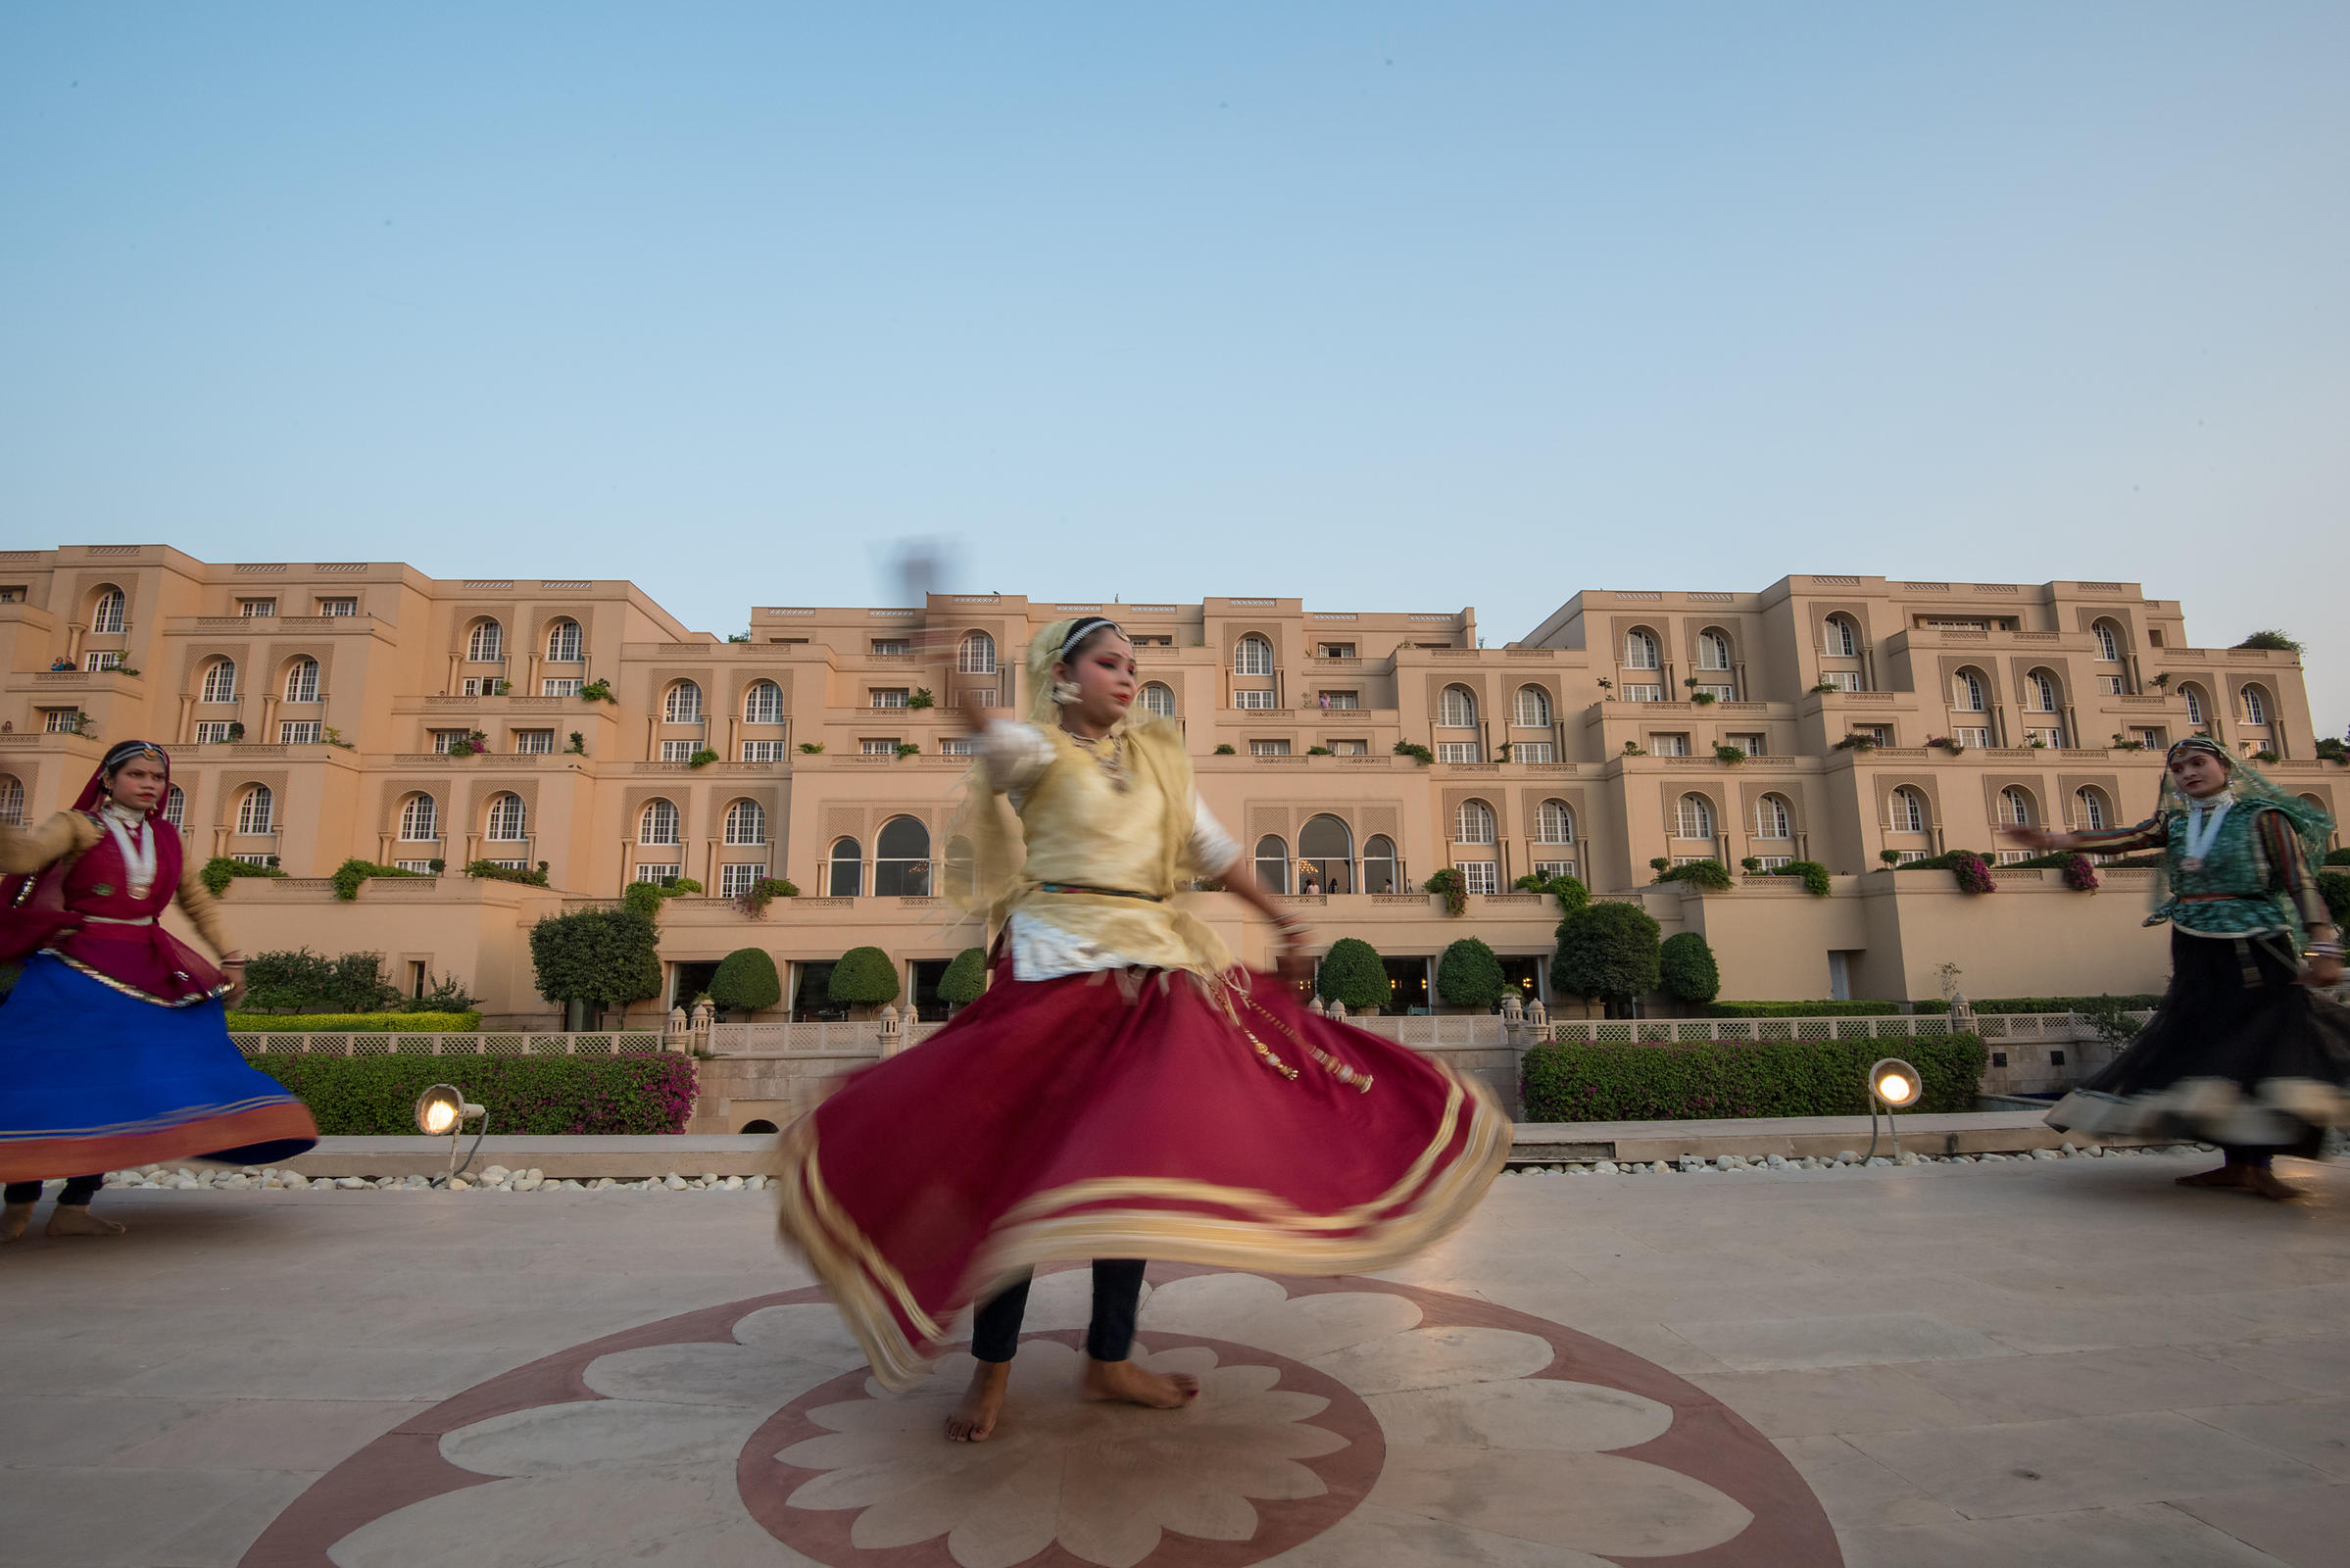 Folk_Dance_at_Pool_Deck_-_The_Oberoi_Amarvilas_Agra_(1)_v1_current